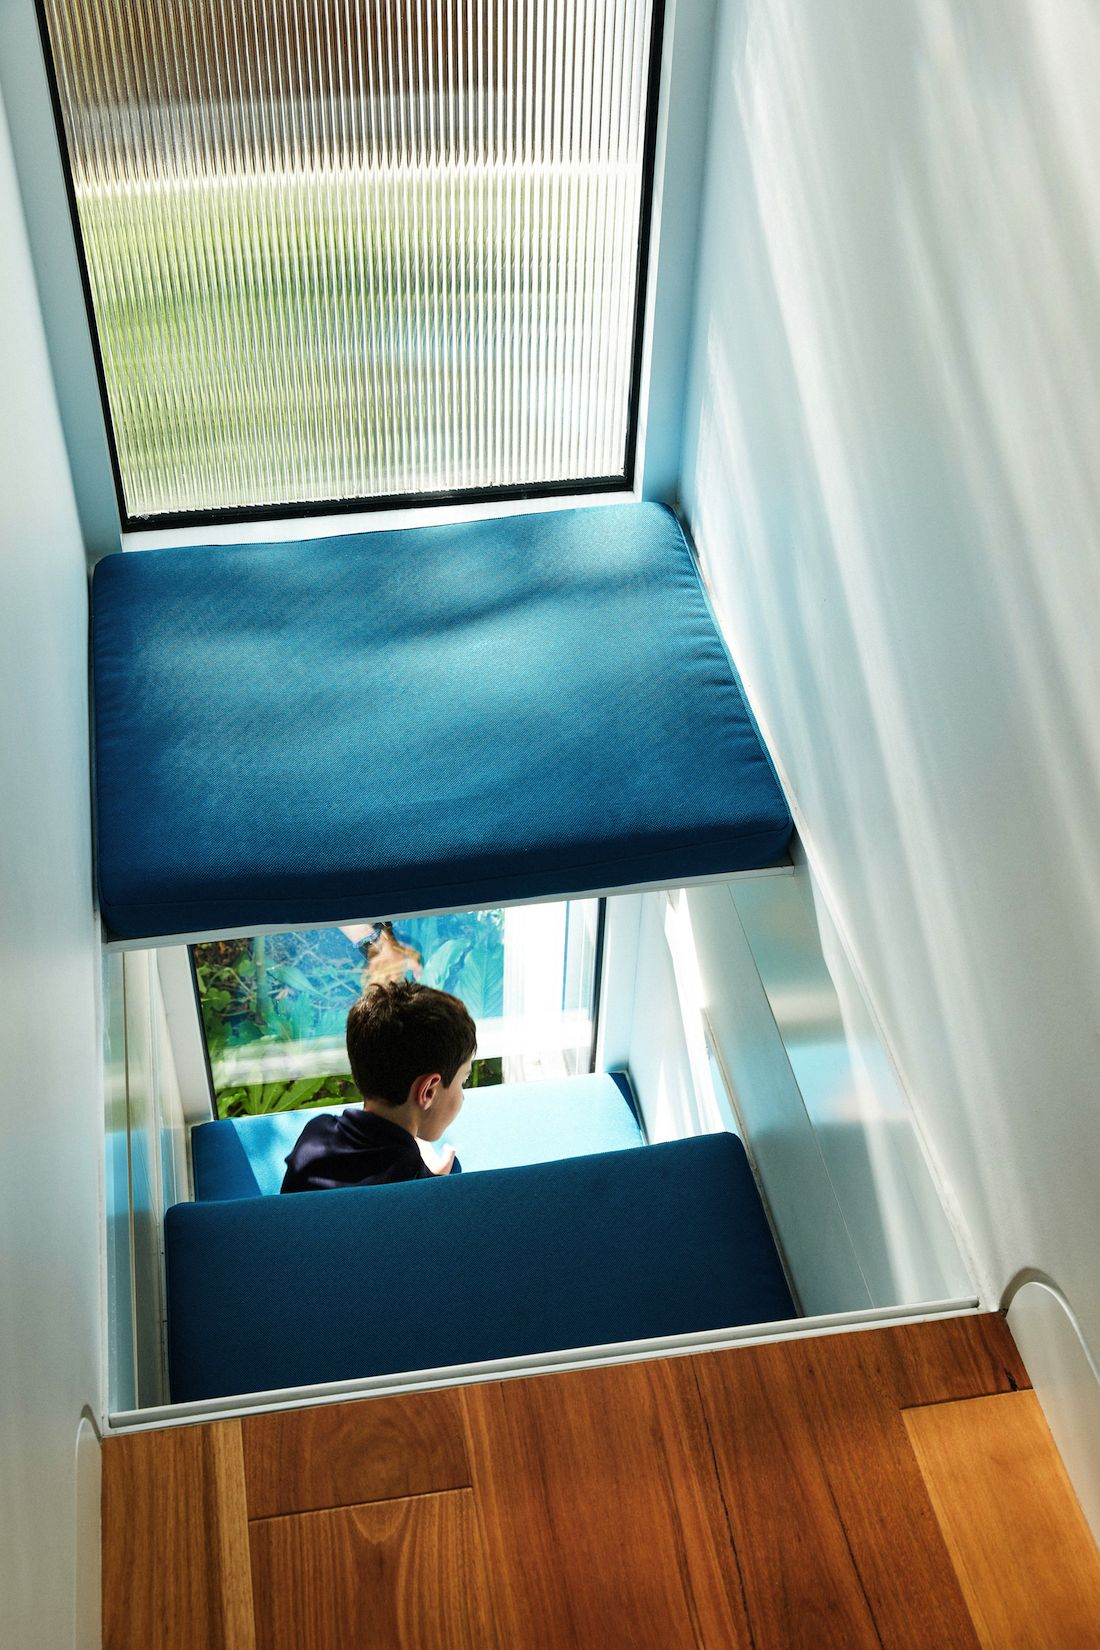 Cubby spot for kids over void